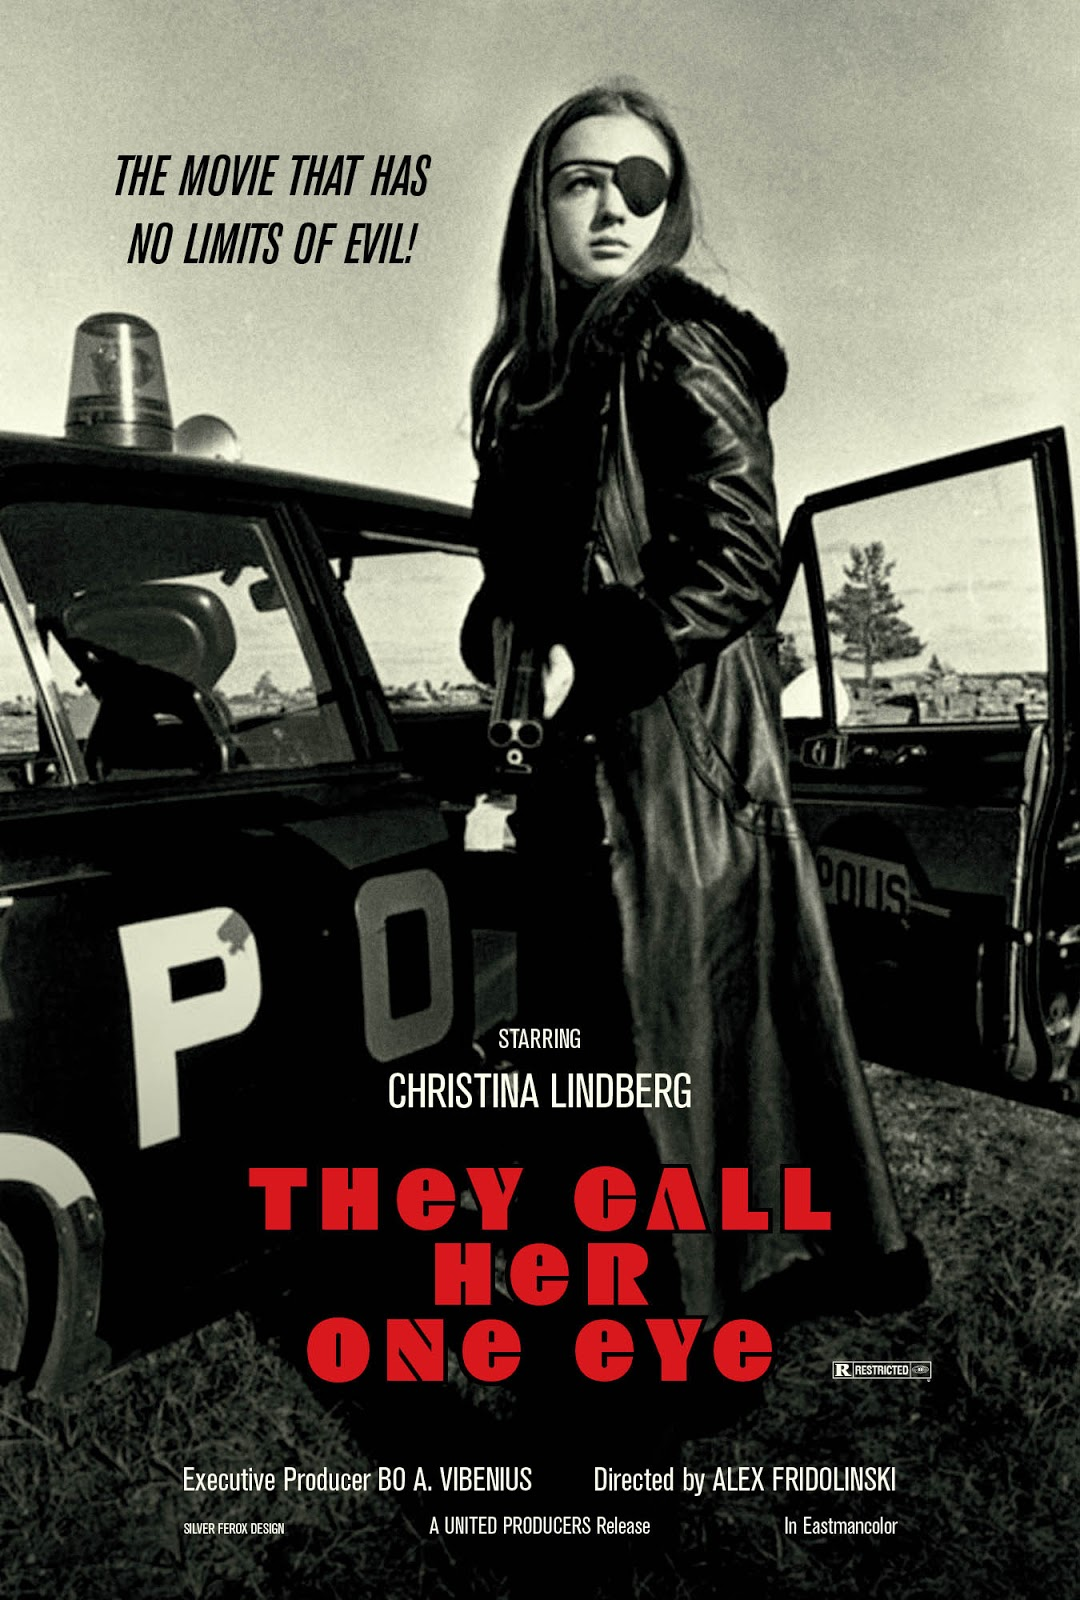 Christina lindberg thriller they call her one eye - 5 8